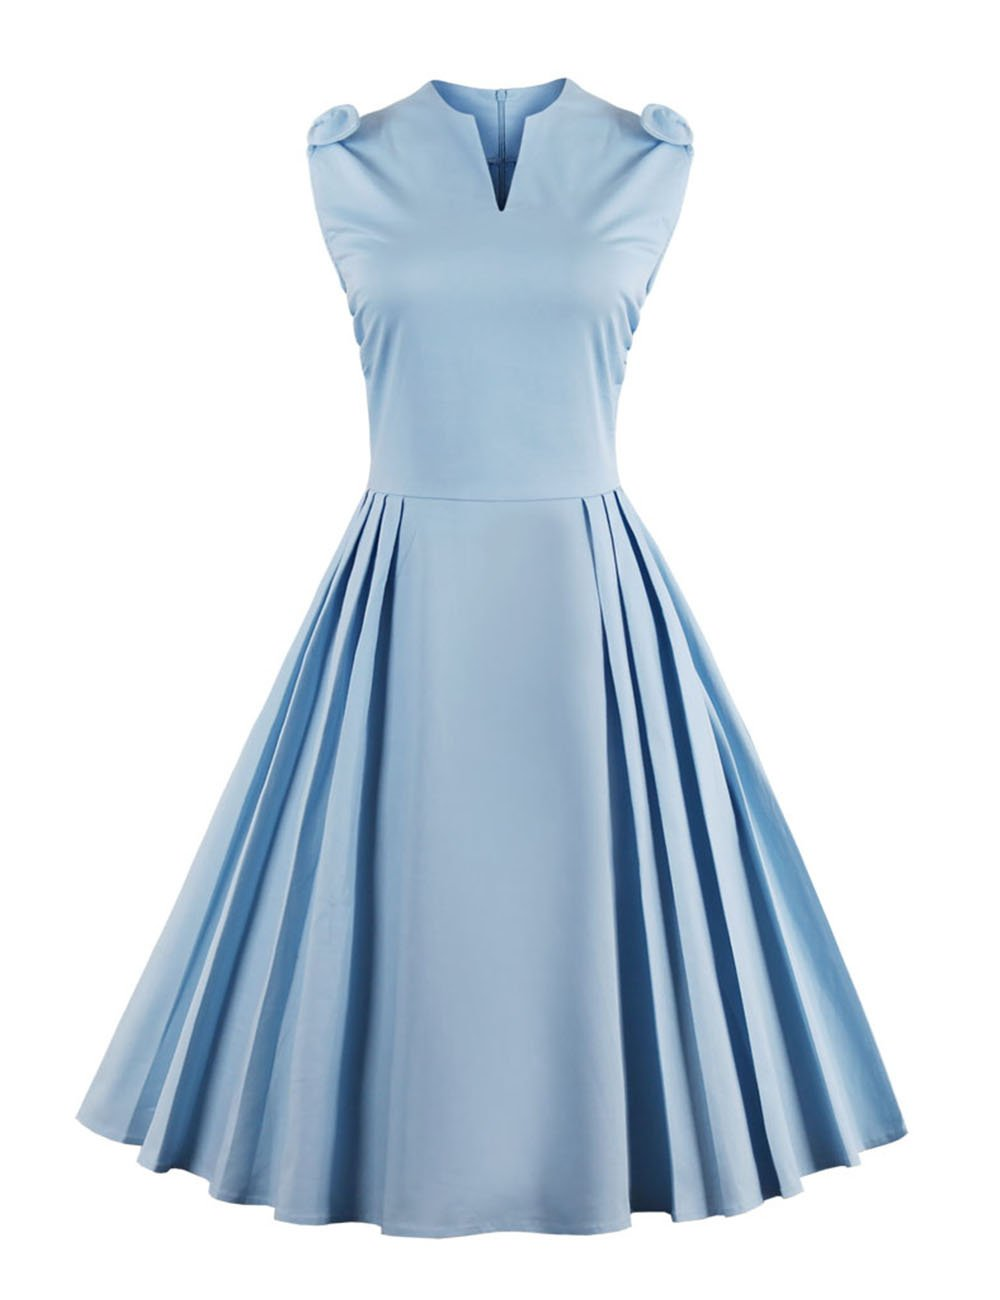 Mulanbridal Women's Retro Floral 50s Vintage Style Cap Sleeve Casual Cocktail Party Swing Dress Light Blue 3XL